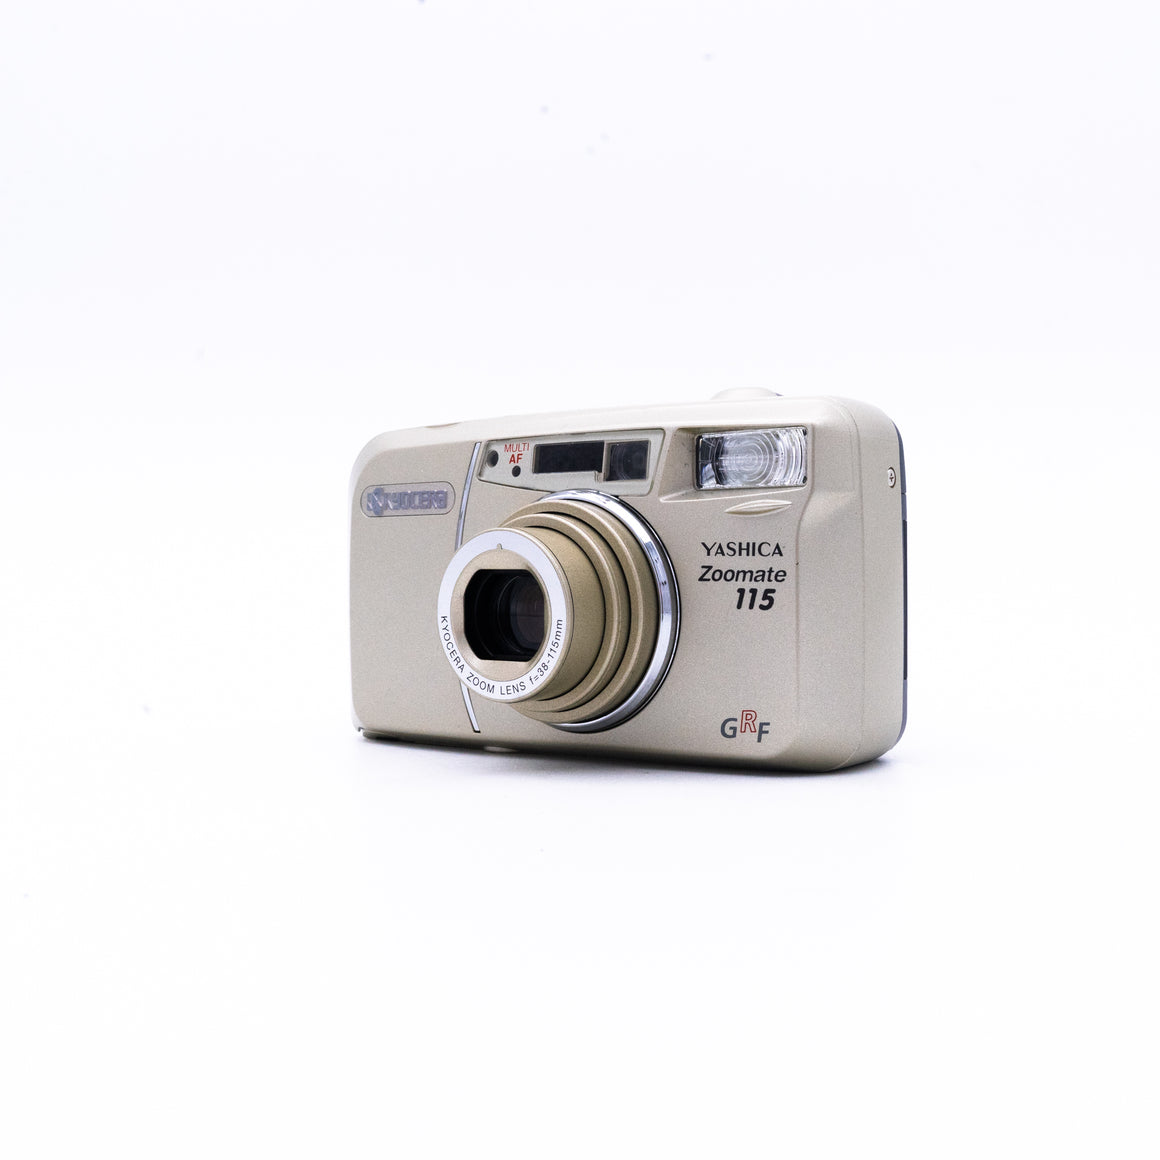 Kycoera Zoomate 115 Point & Shoot Camera with 38-115mm Zoom Lens